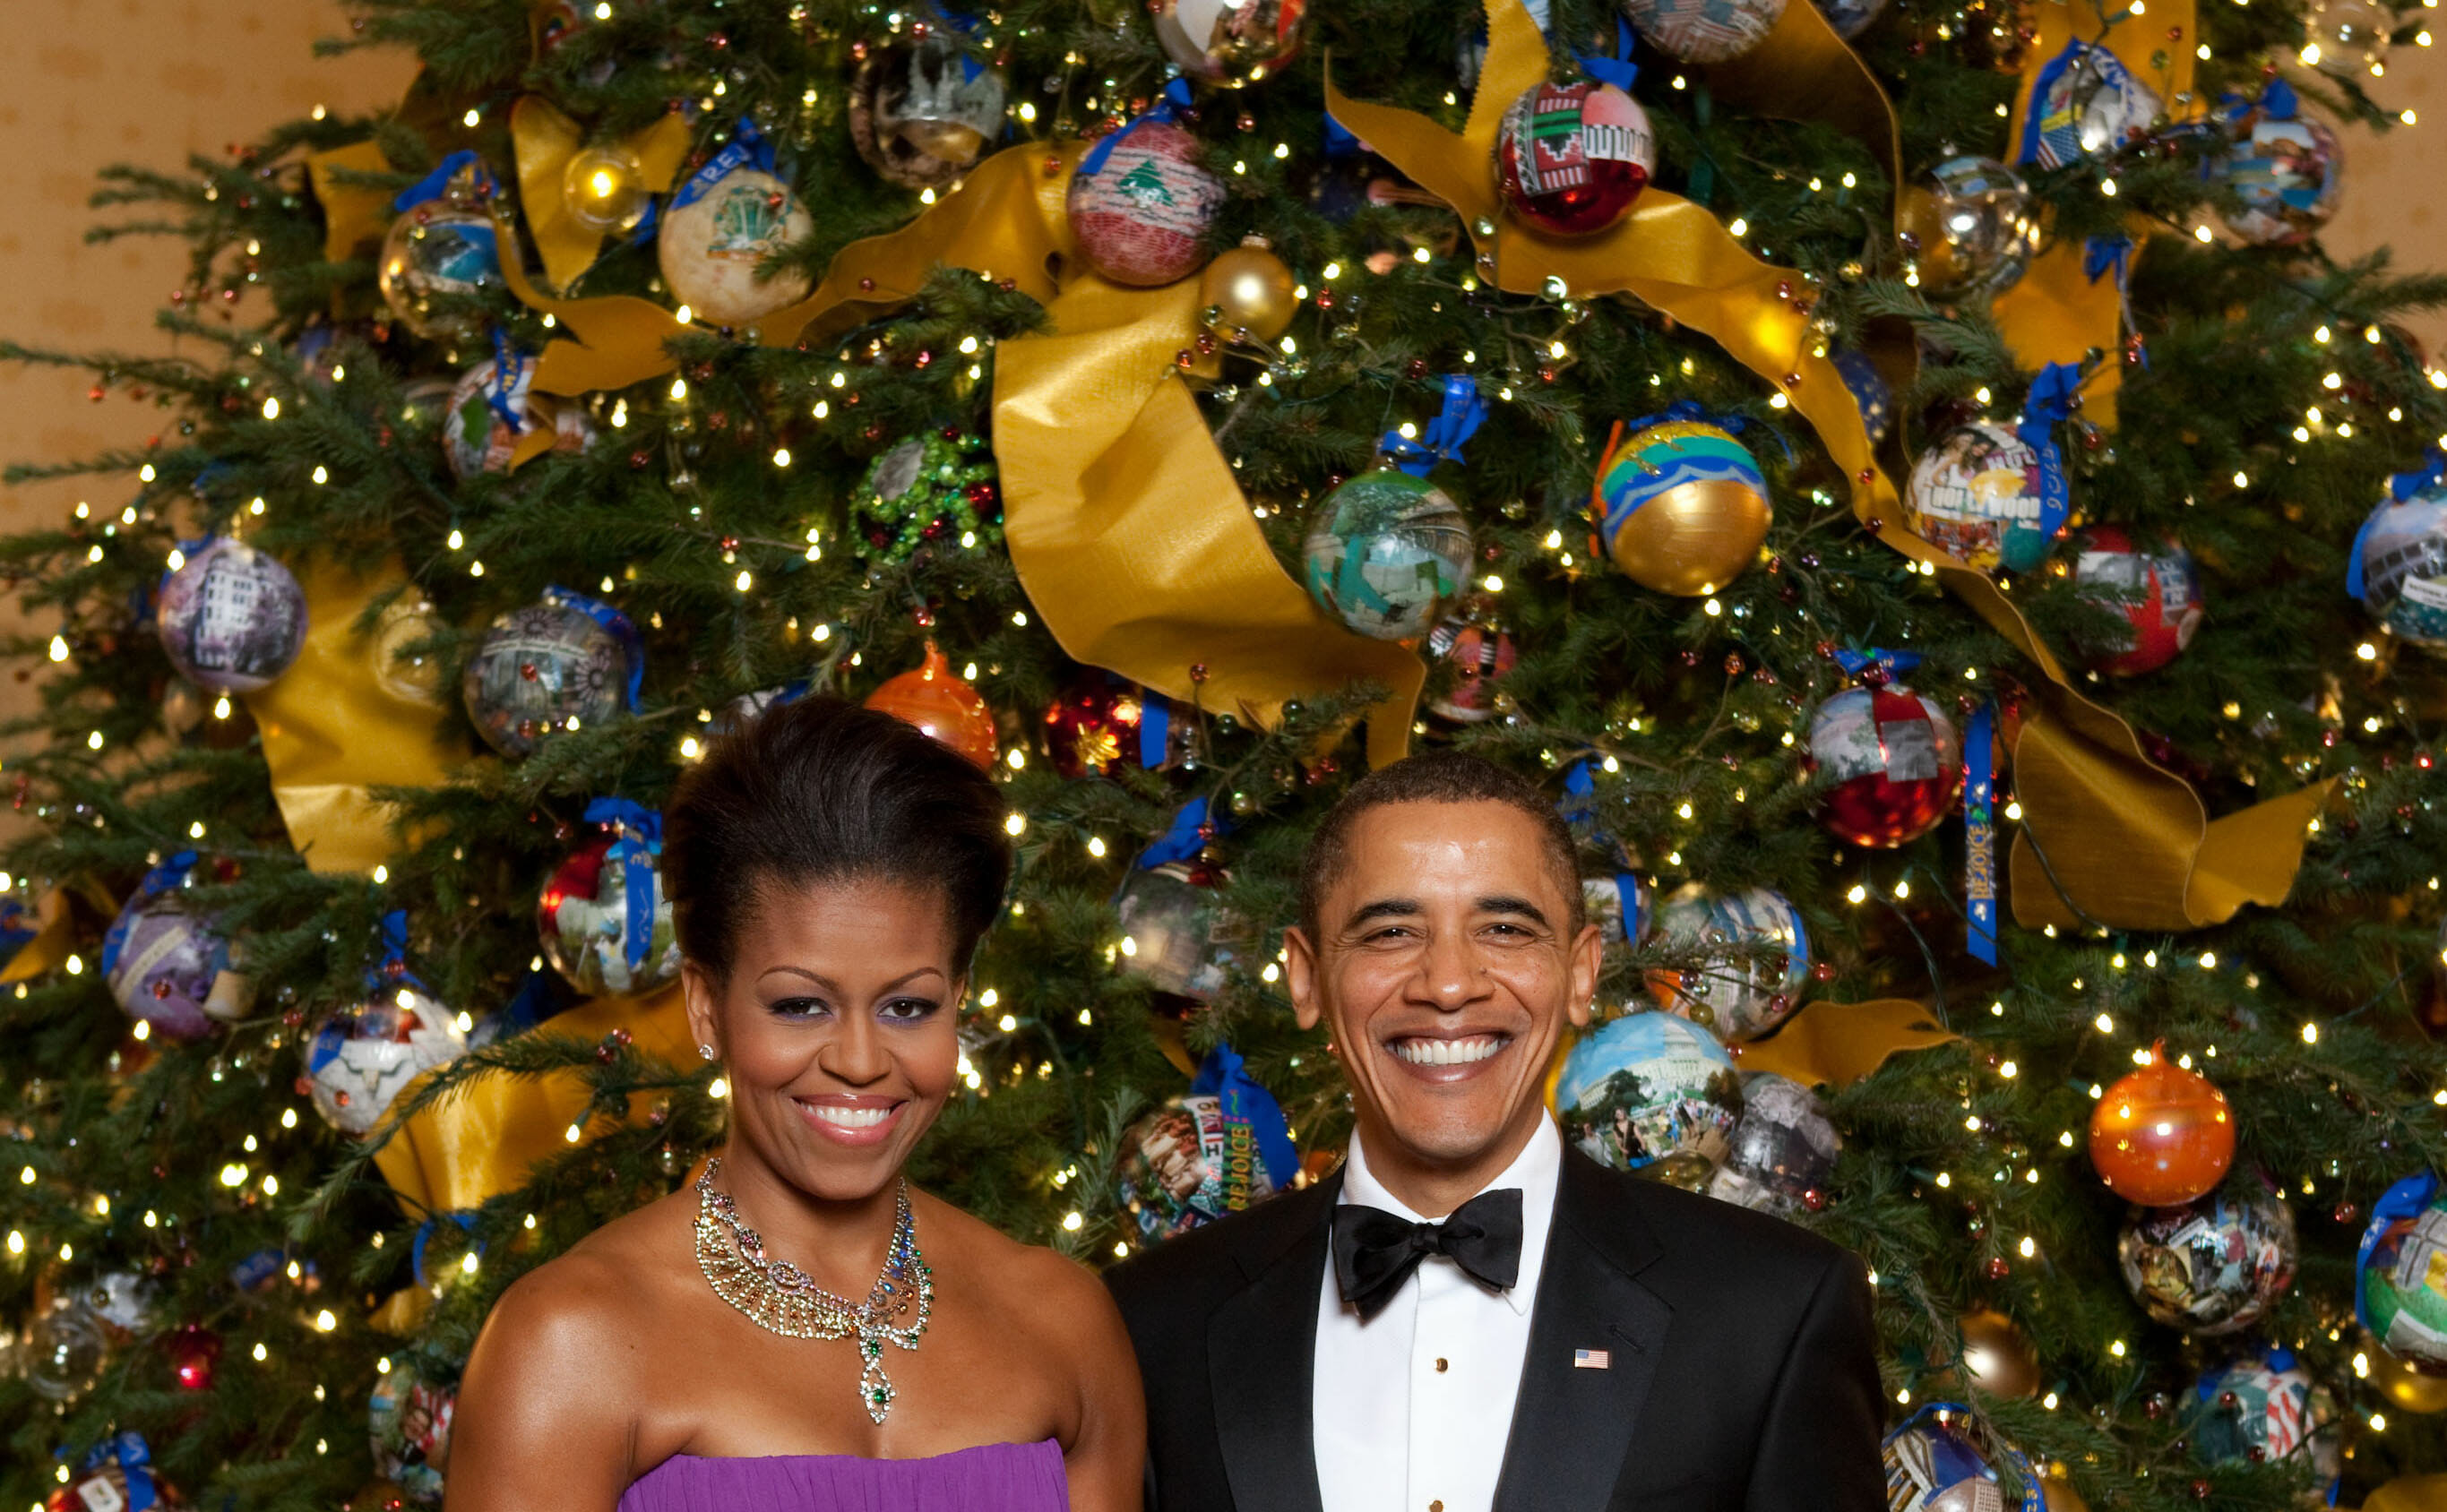 This Is How You Grow The Obamas' Christmas Tree